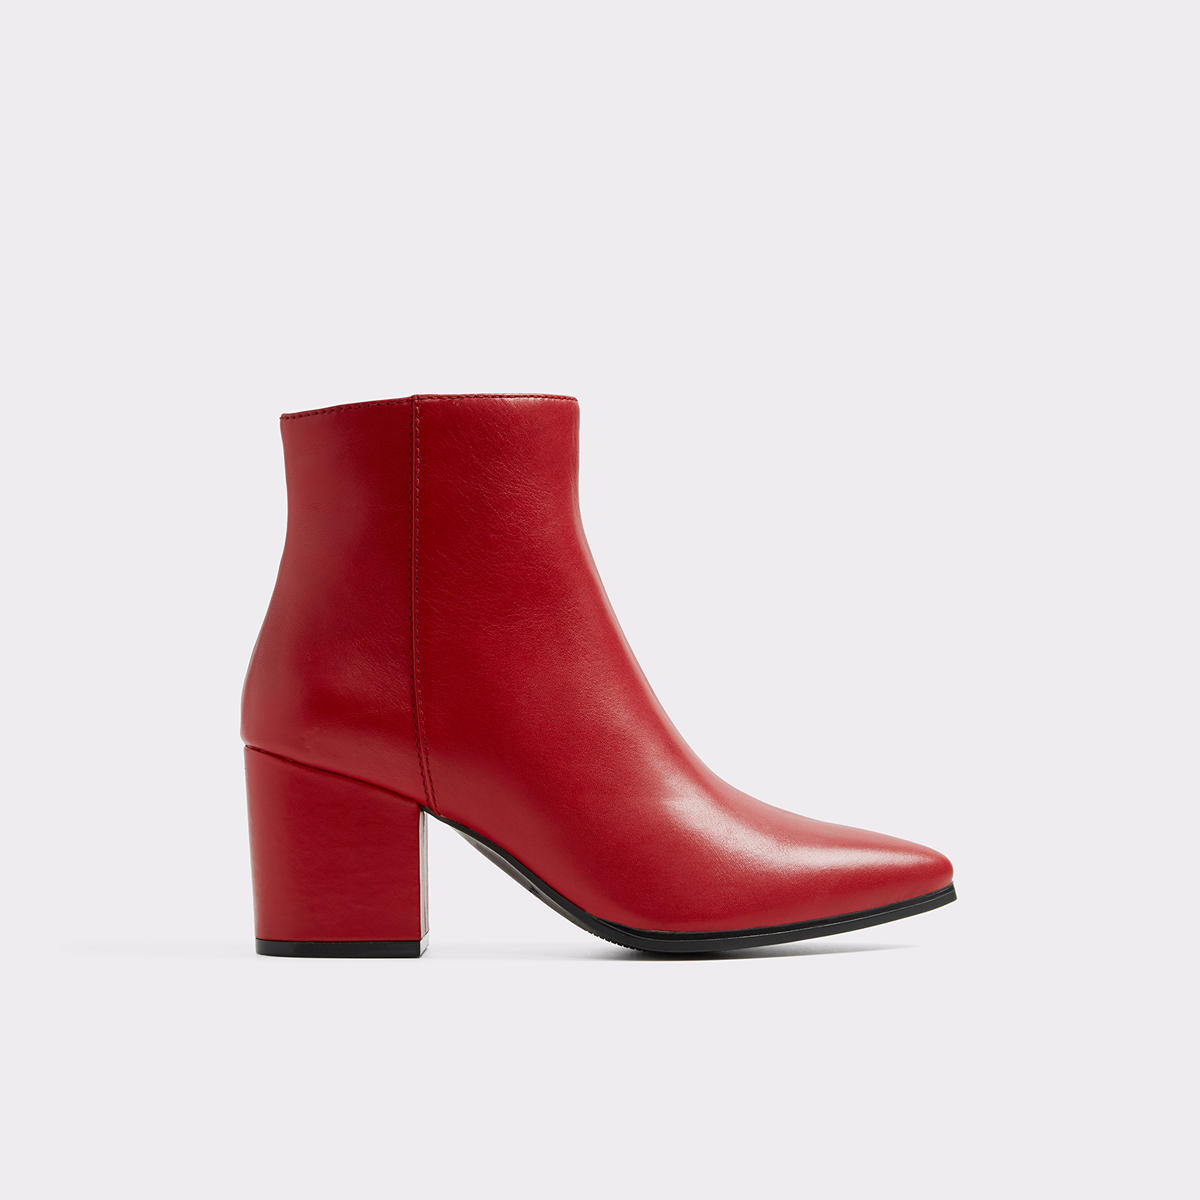 89358d1e5118b Fralissi Red Women s Ankle boots